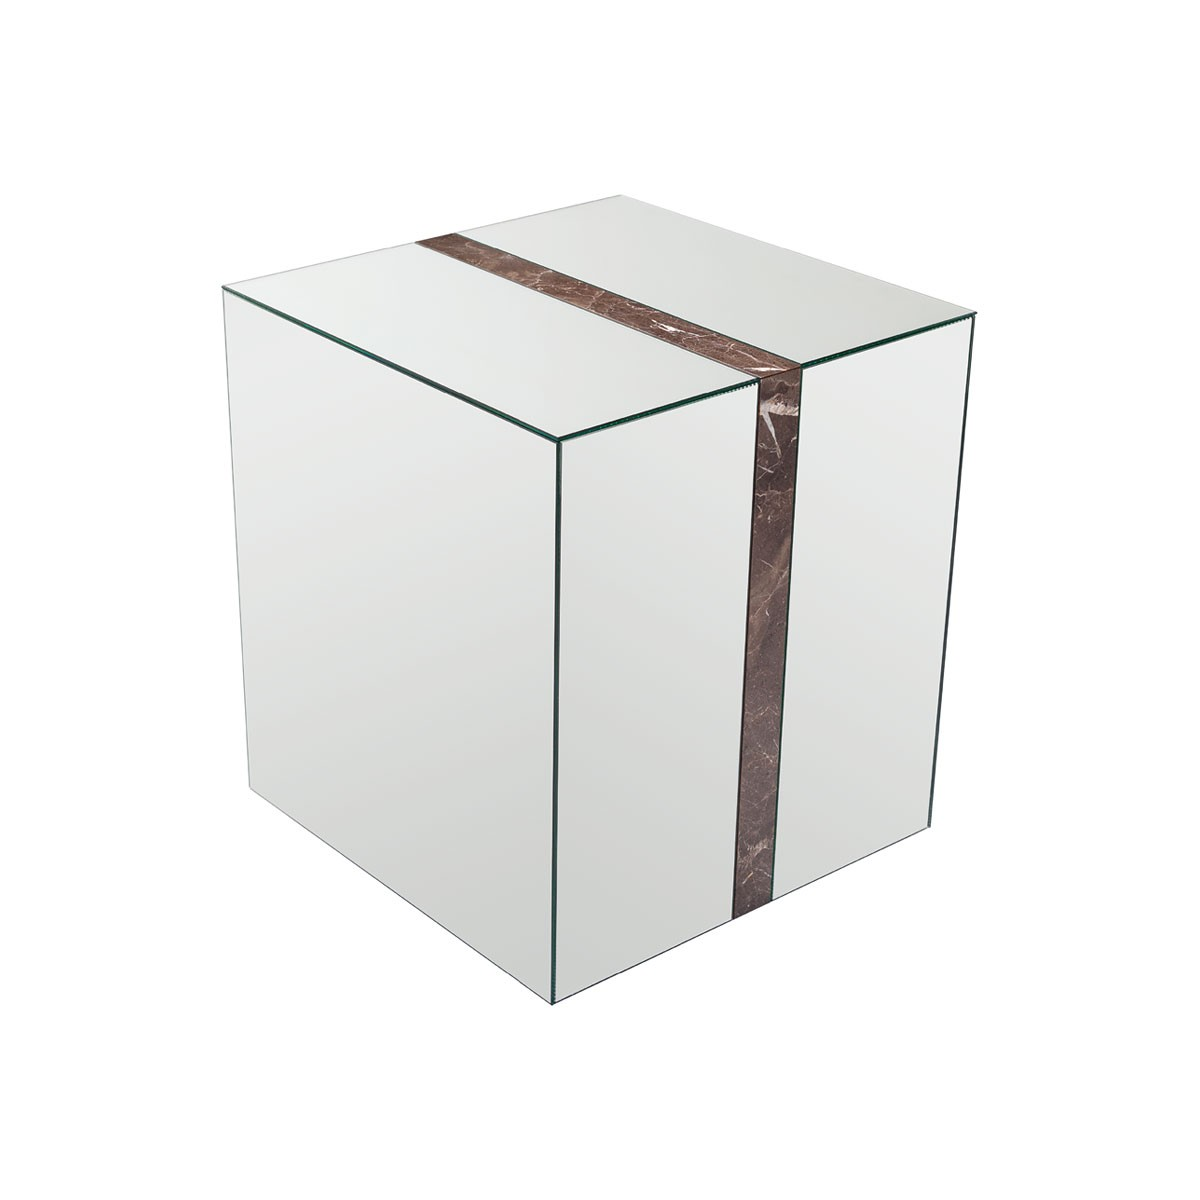 The Rio Side Table